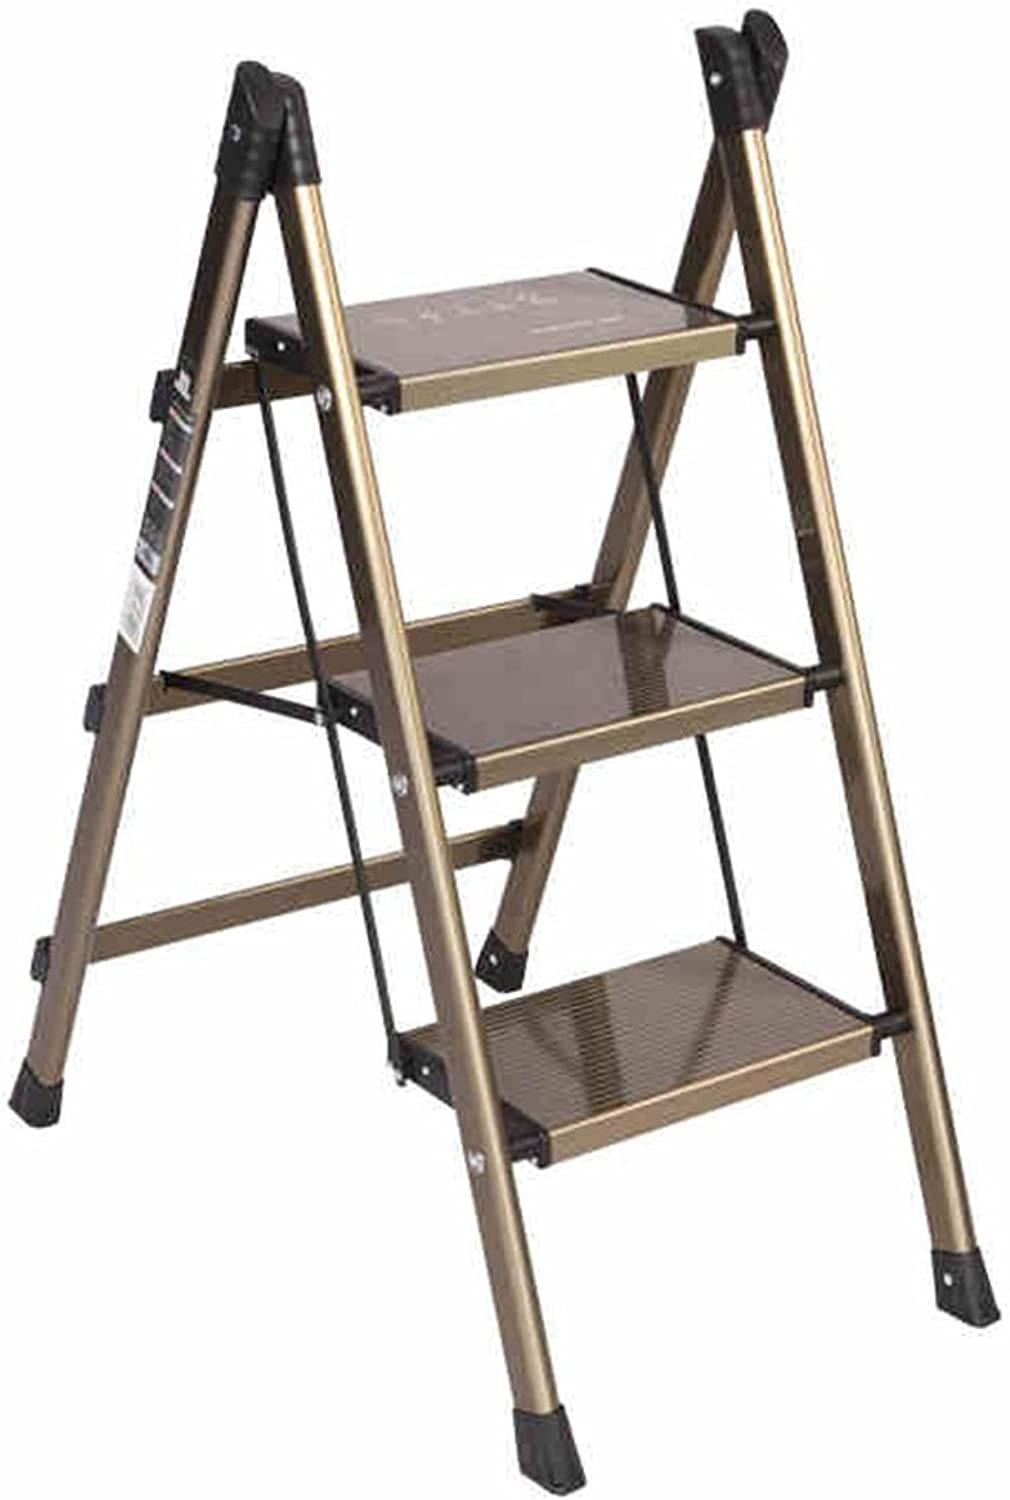 Kitchen Folding Ladders 2 Step, Household Aluminum Alloy Non Slip Safety Tread Step Stool for Indoor (Size   3 Step)